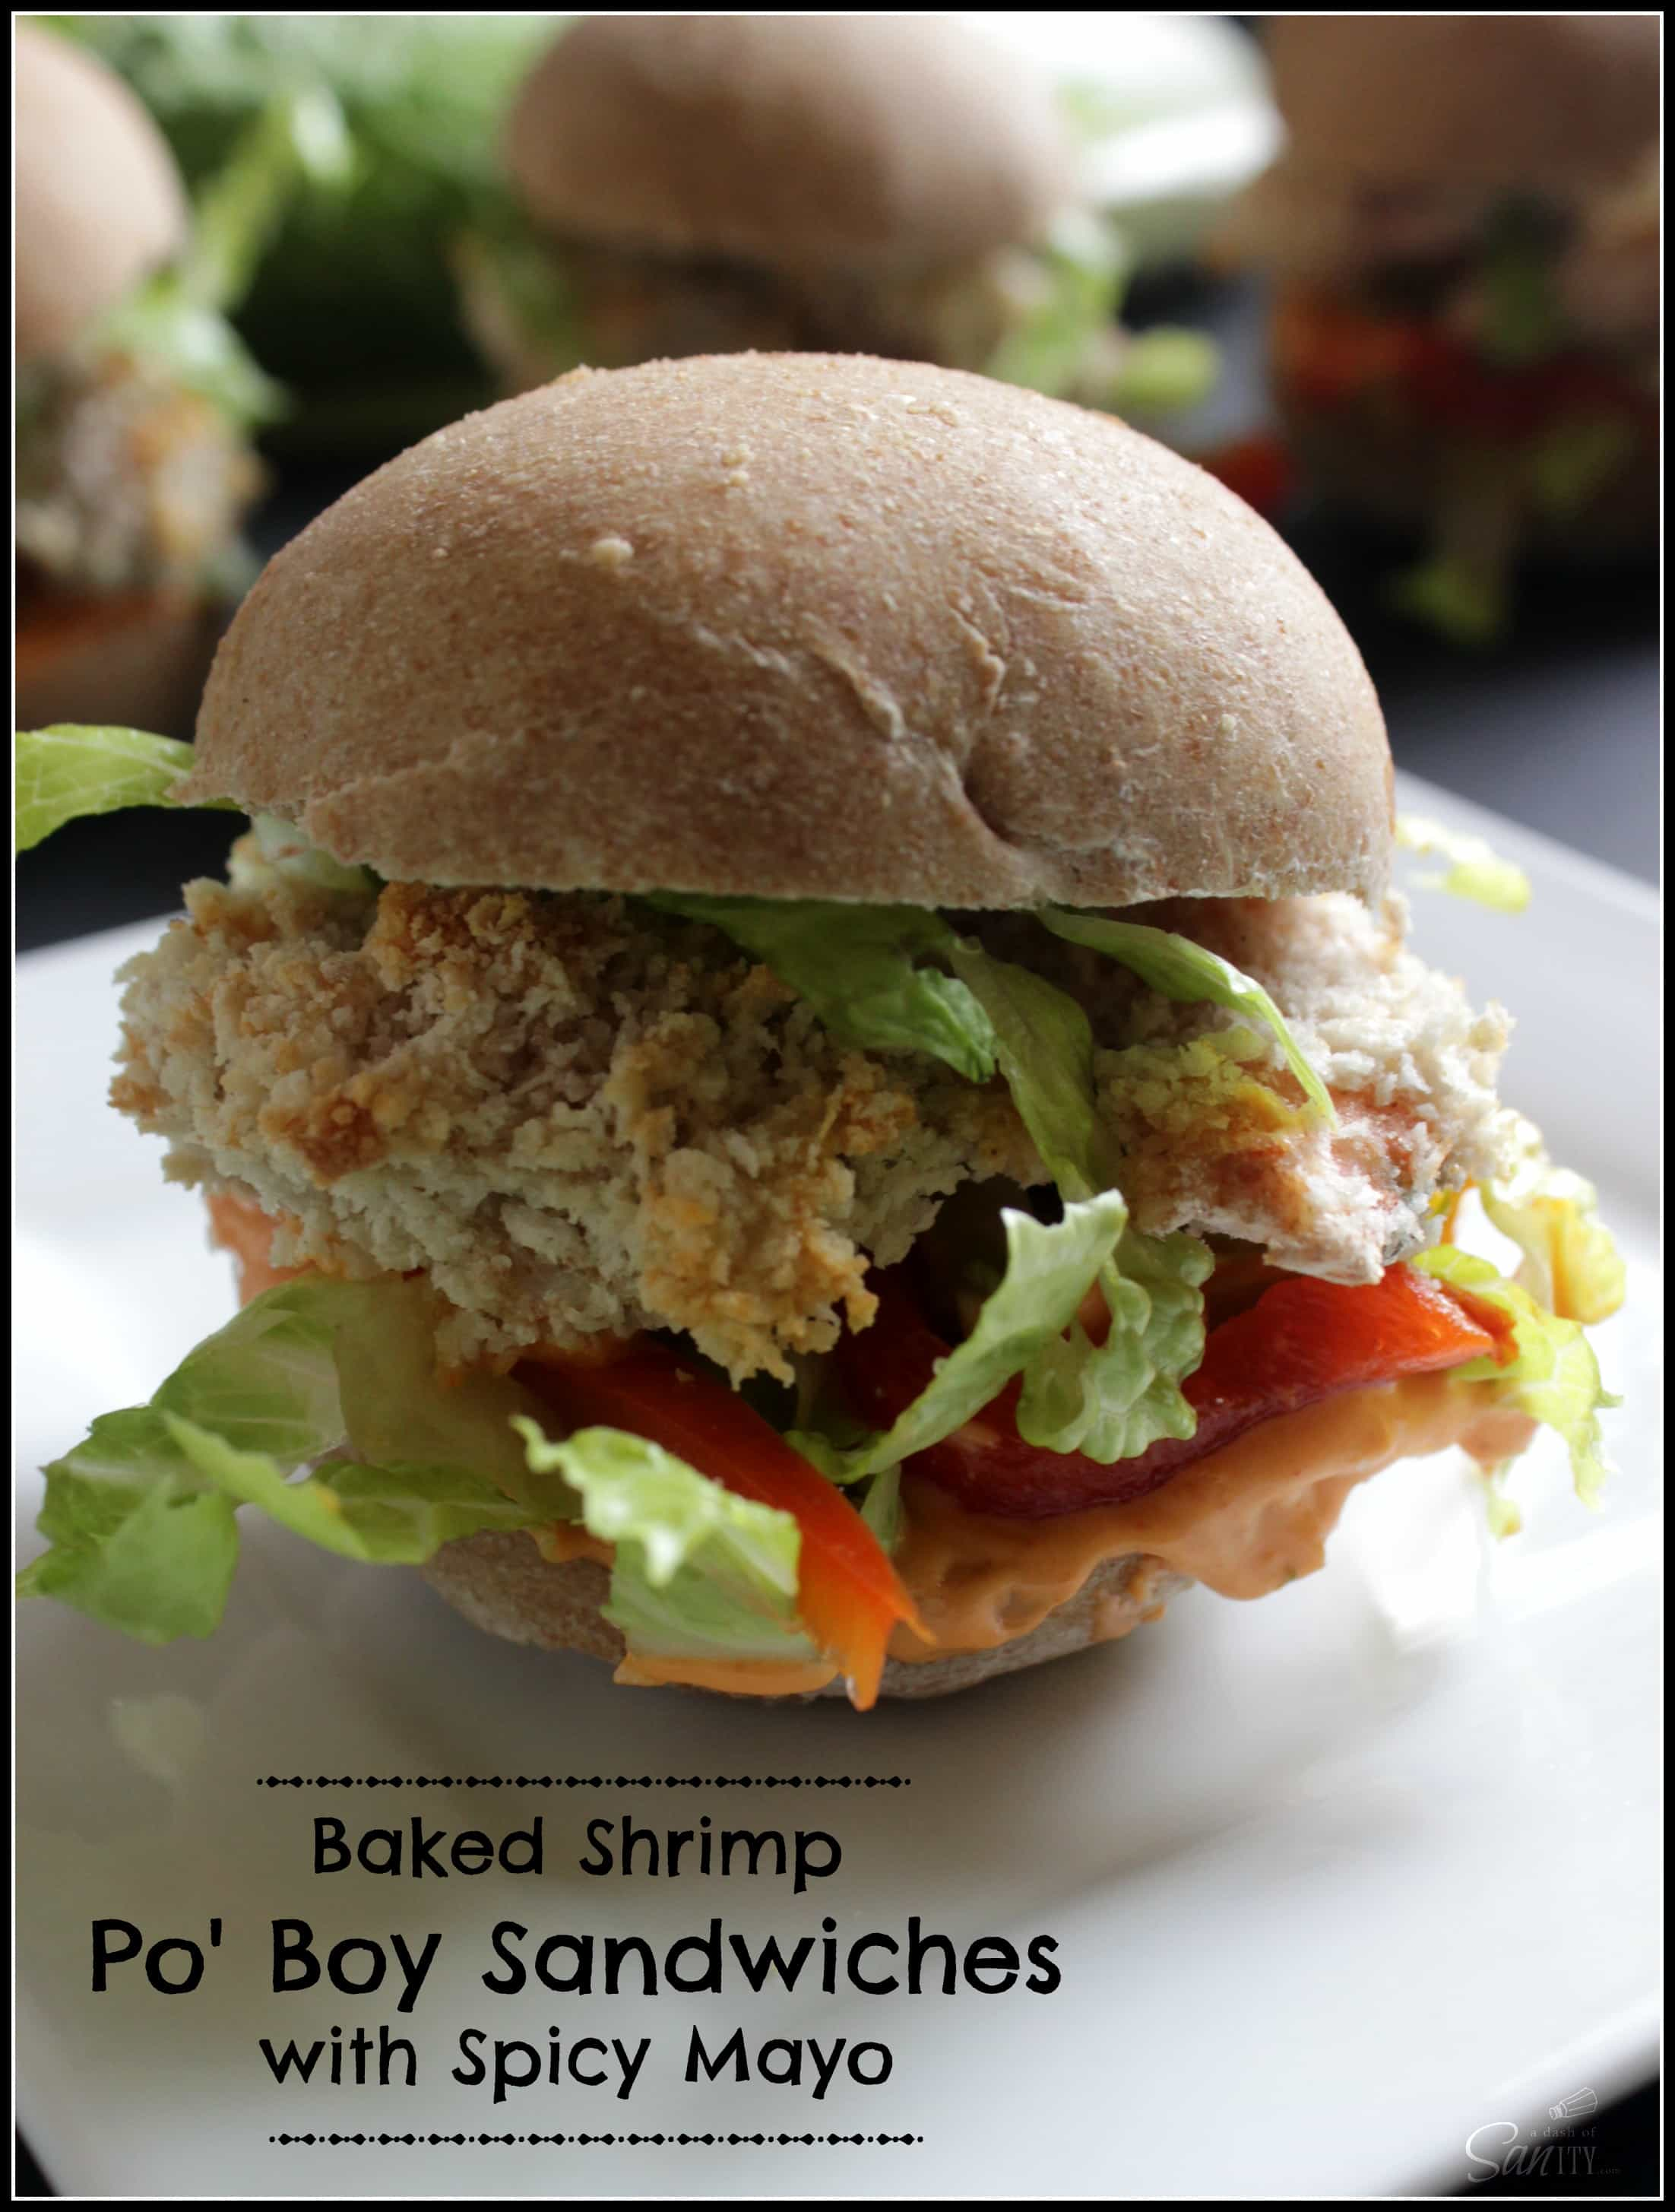 Baked Shrimp Po' Boy Sandwiches with Spicy Mayo